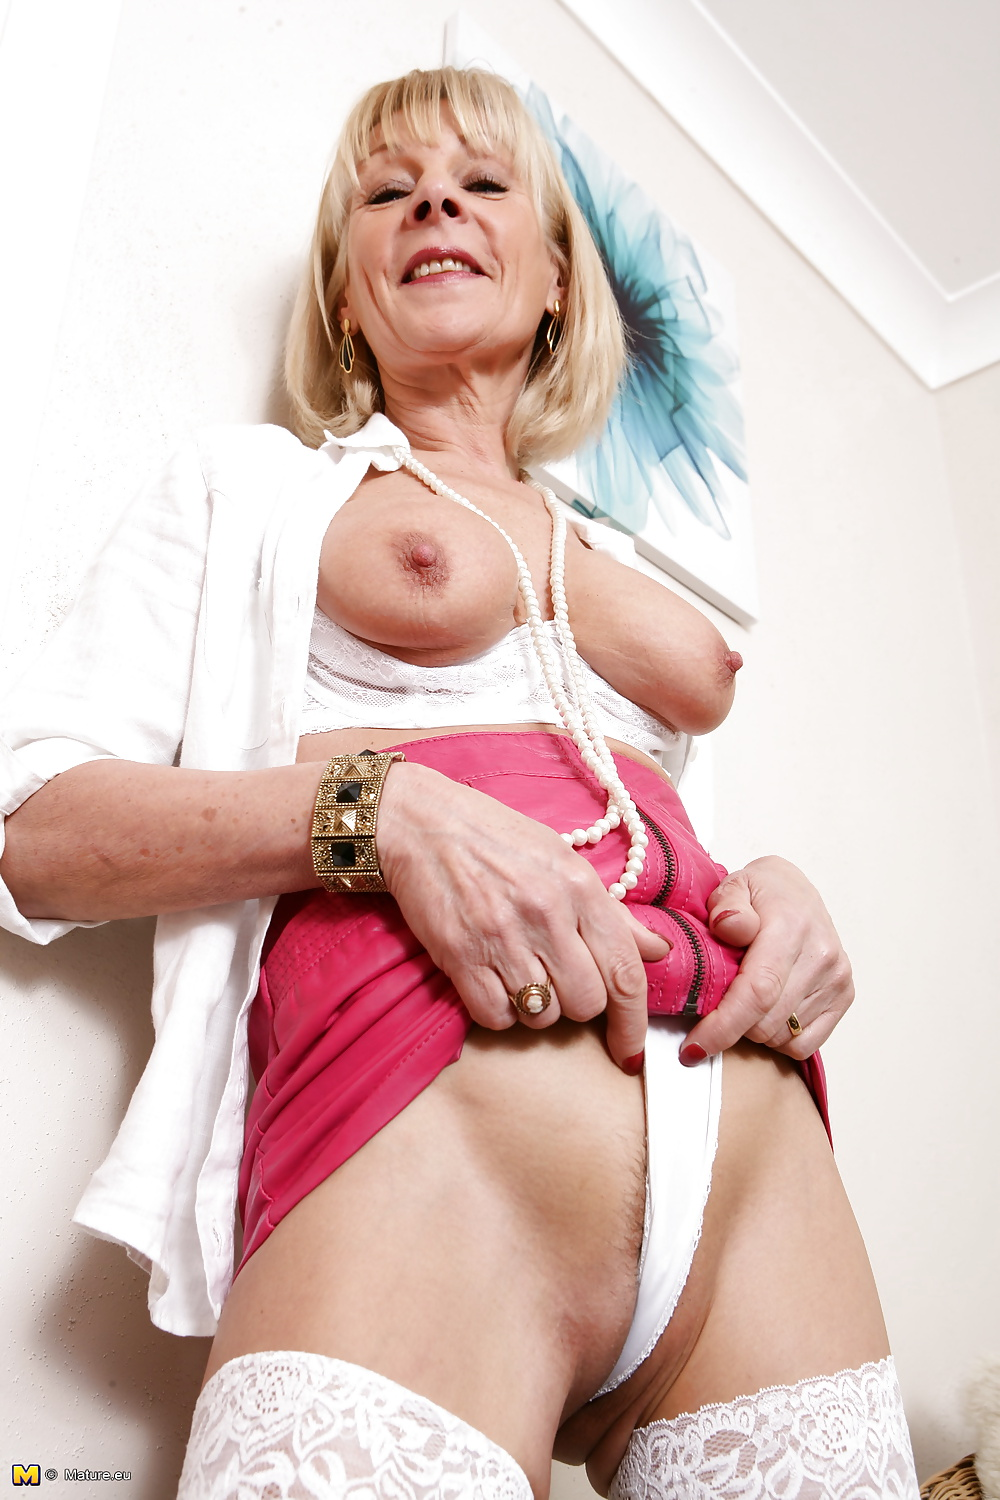 Old but still hot granny takes young cock 2